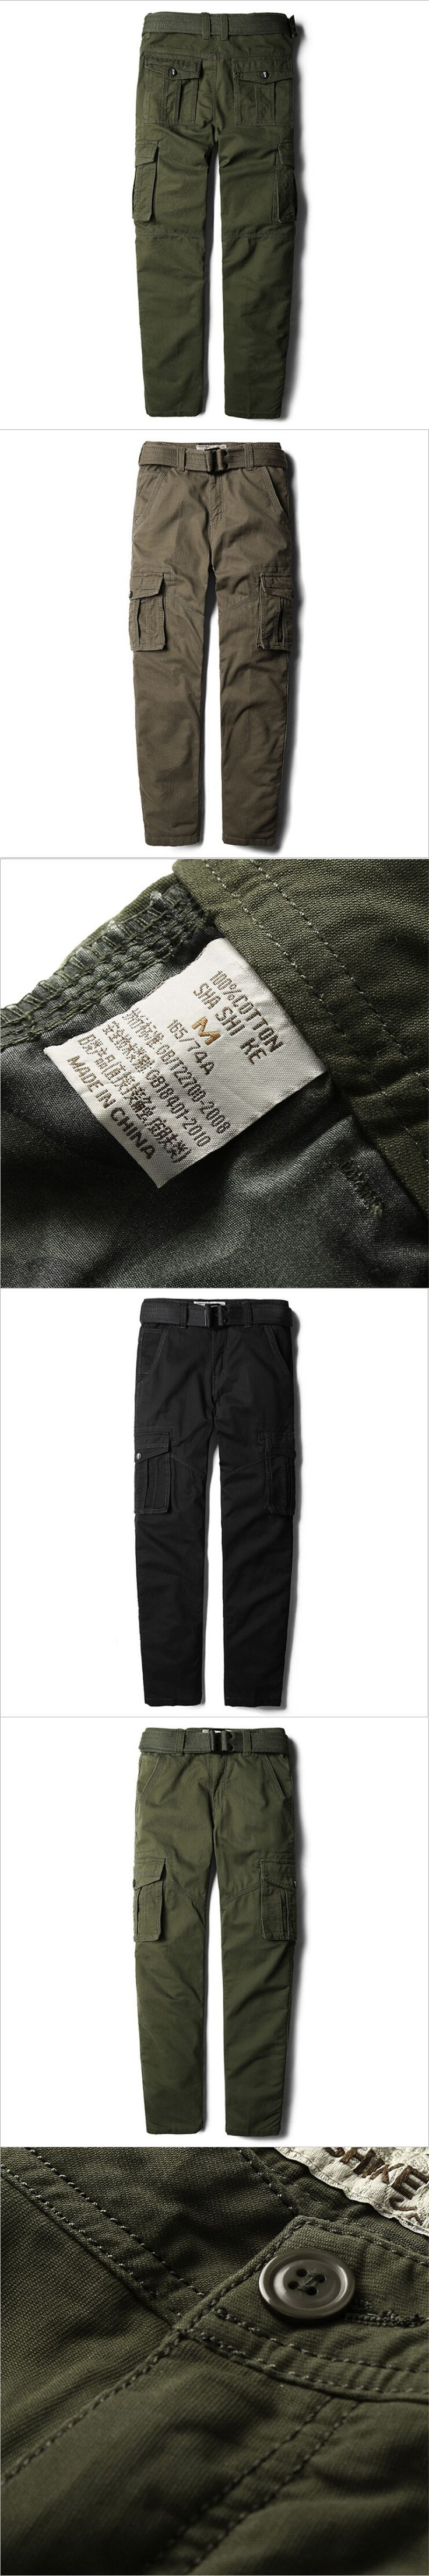 Cargo Pants Men 4Xl Autumn Spring Casual Male Trousers Army Green Pants Cotton Men Spliced Pantalones A3160